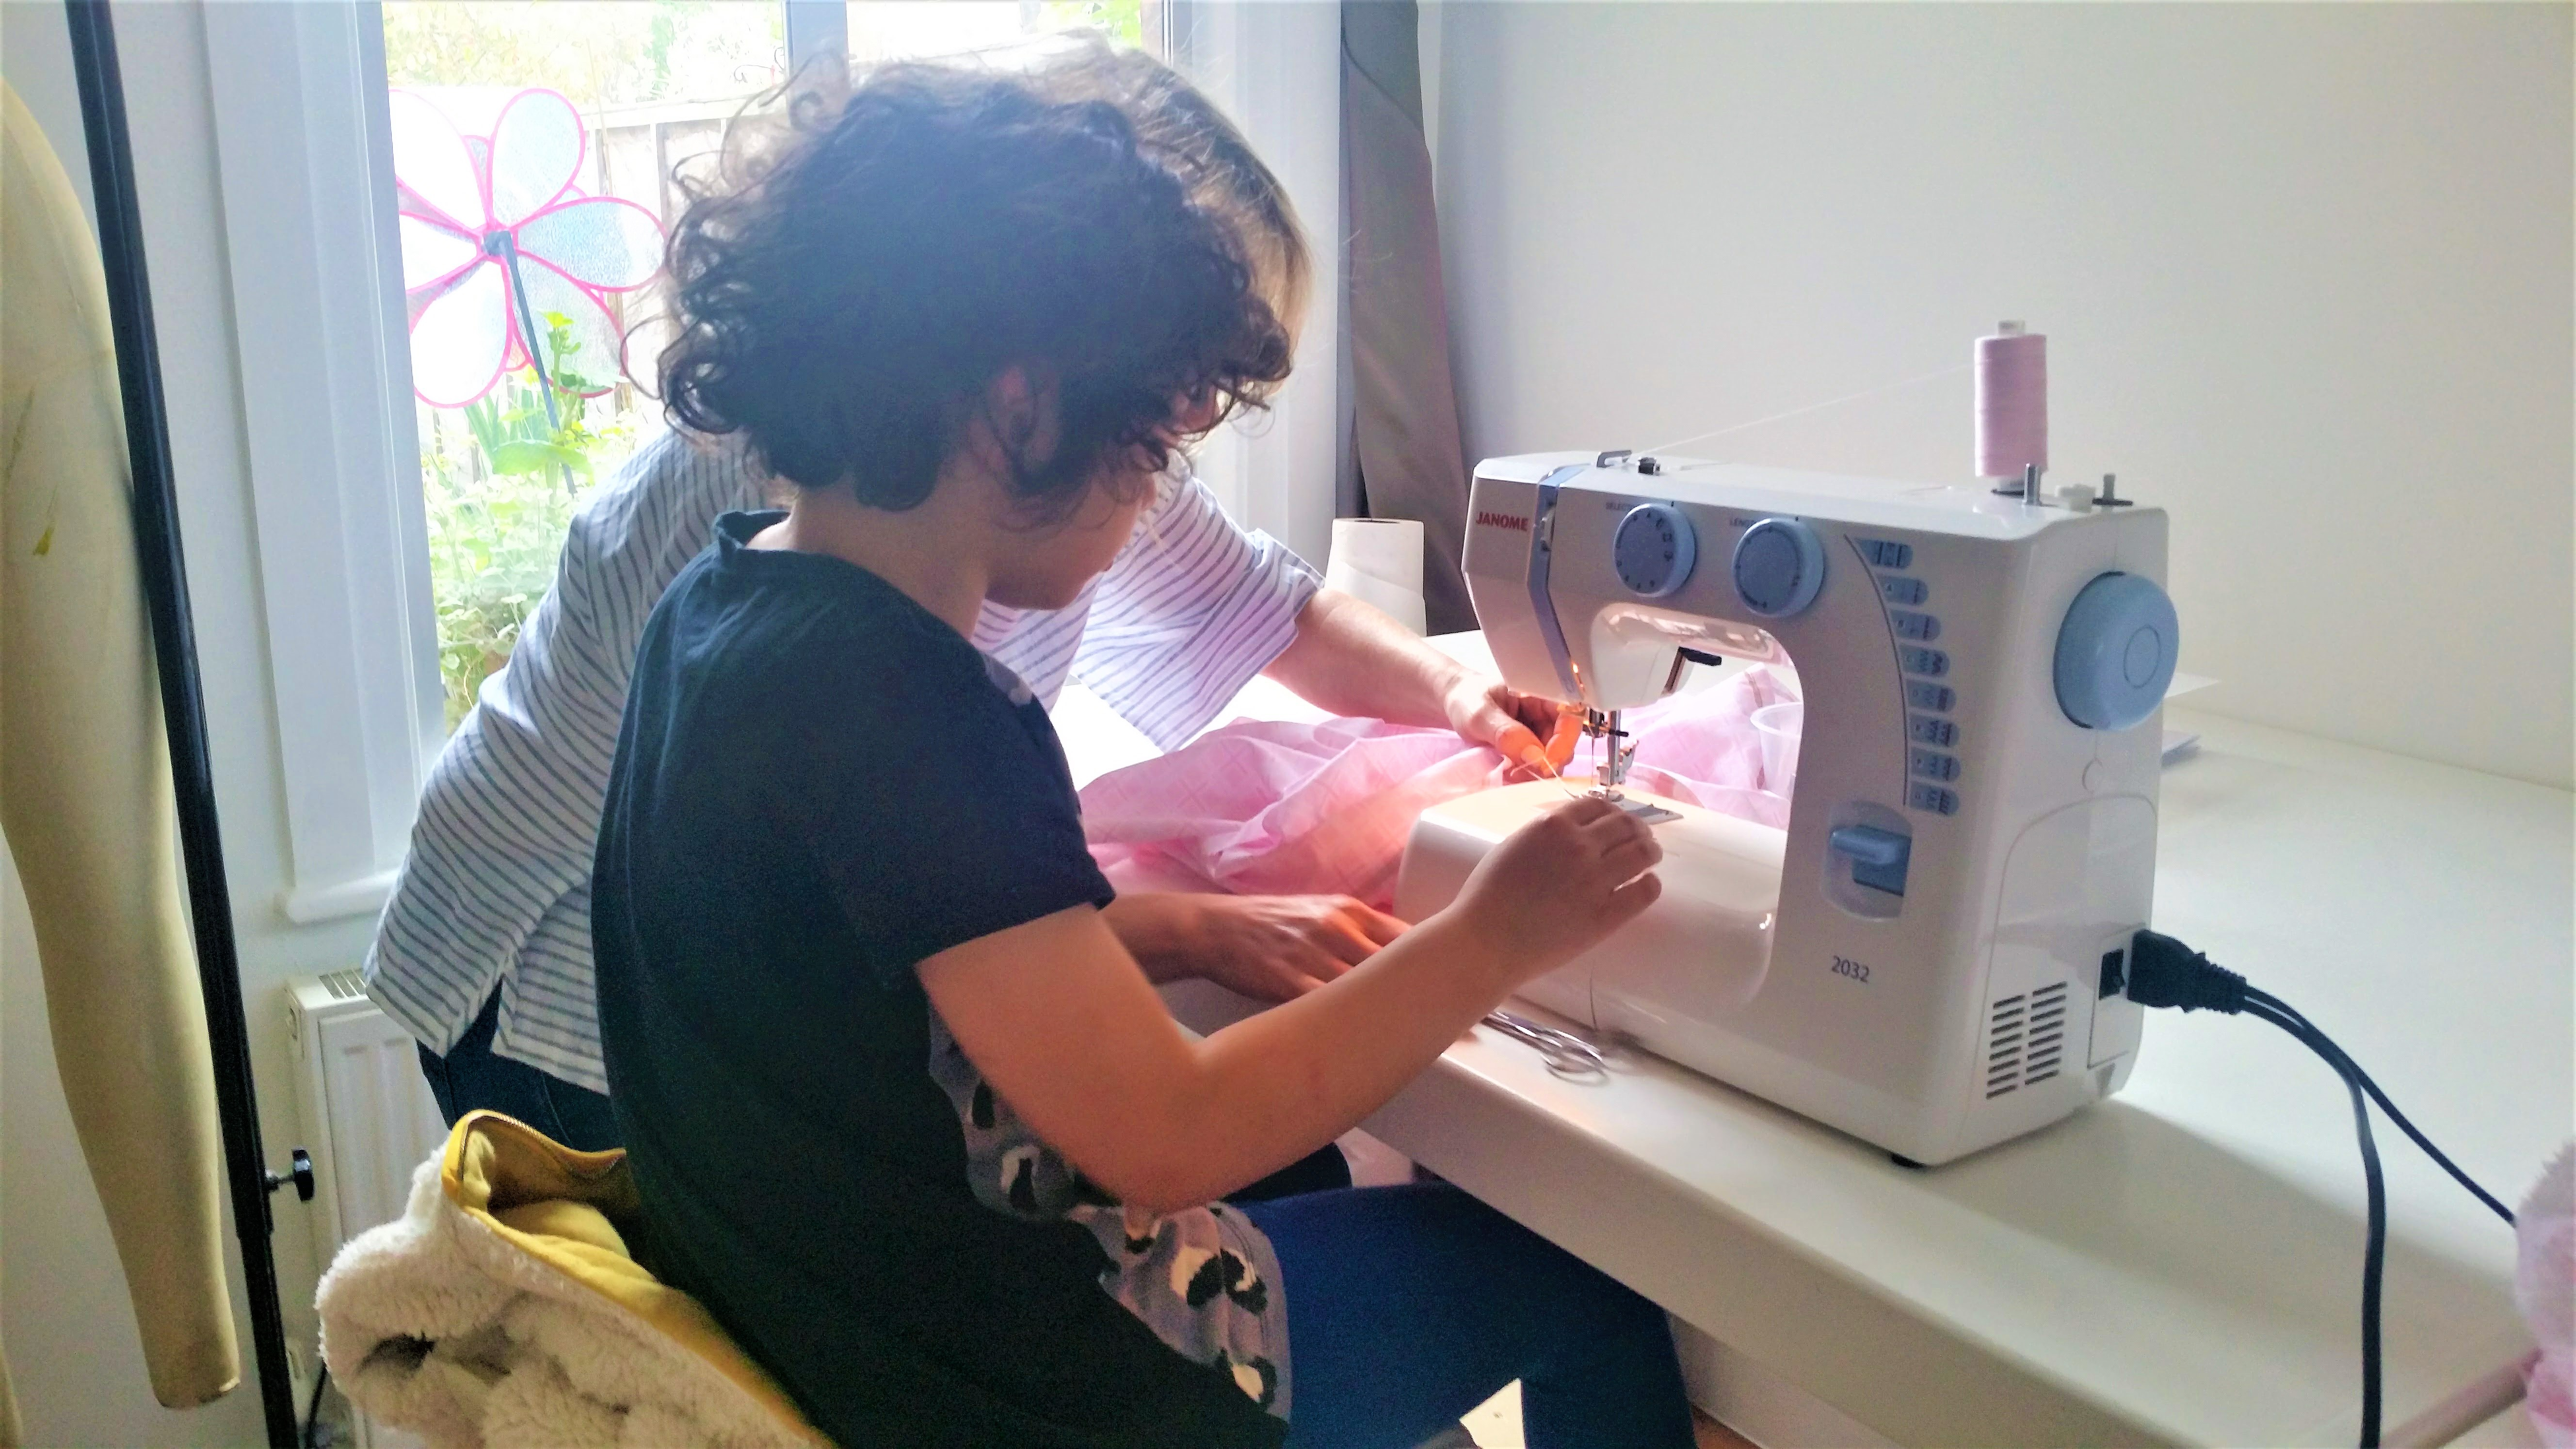 Janome sewing machines Fashion Loop